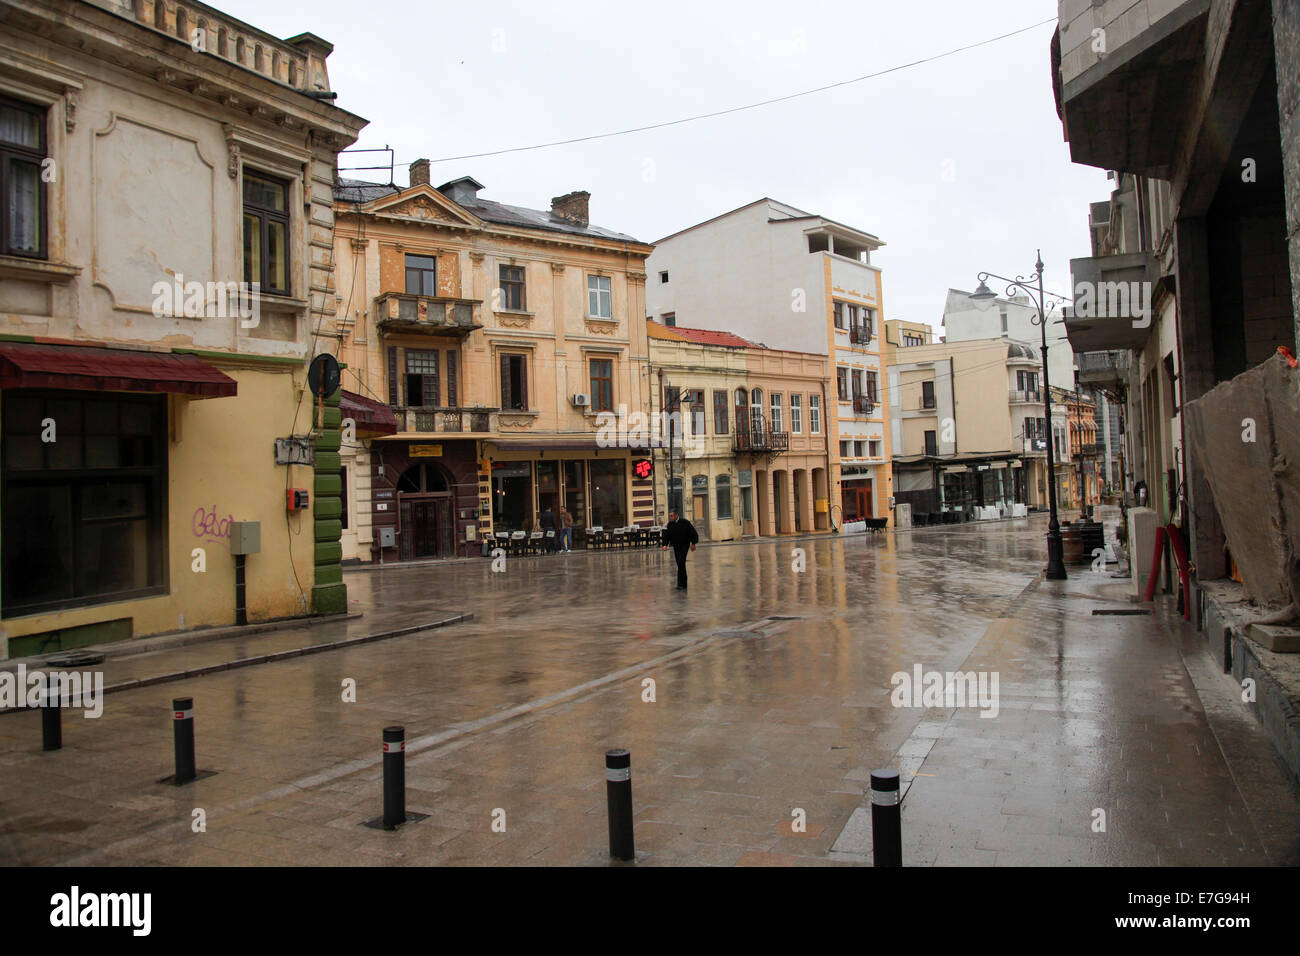 Bucharest Romania decaying buildings Stock Photo